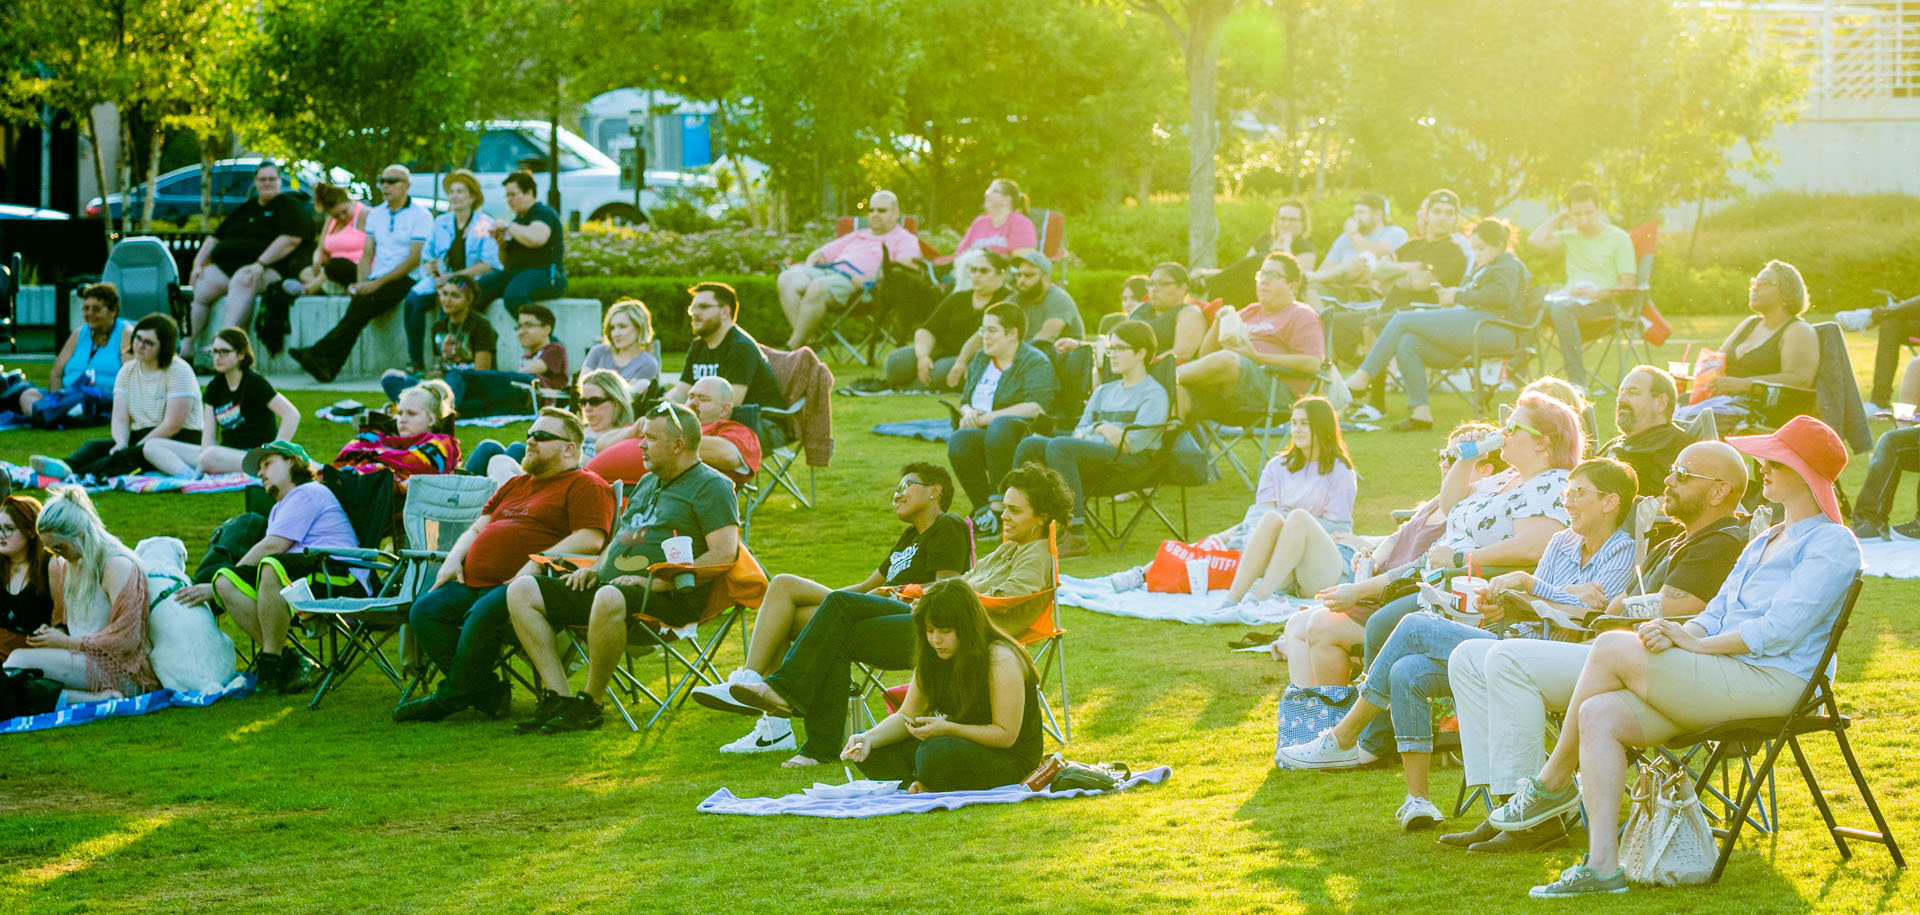 People look onto a concert at Guthrie Green in downtown Tulsa, Oklahoma.